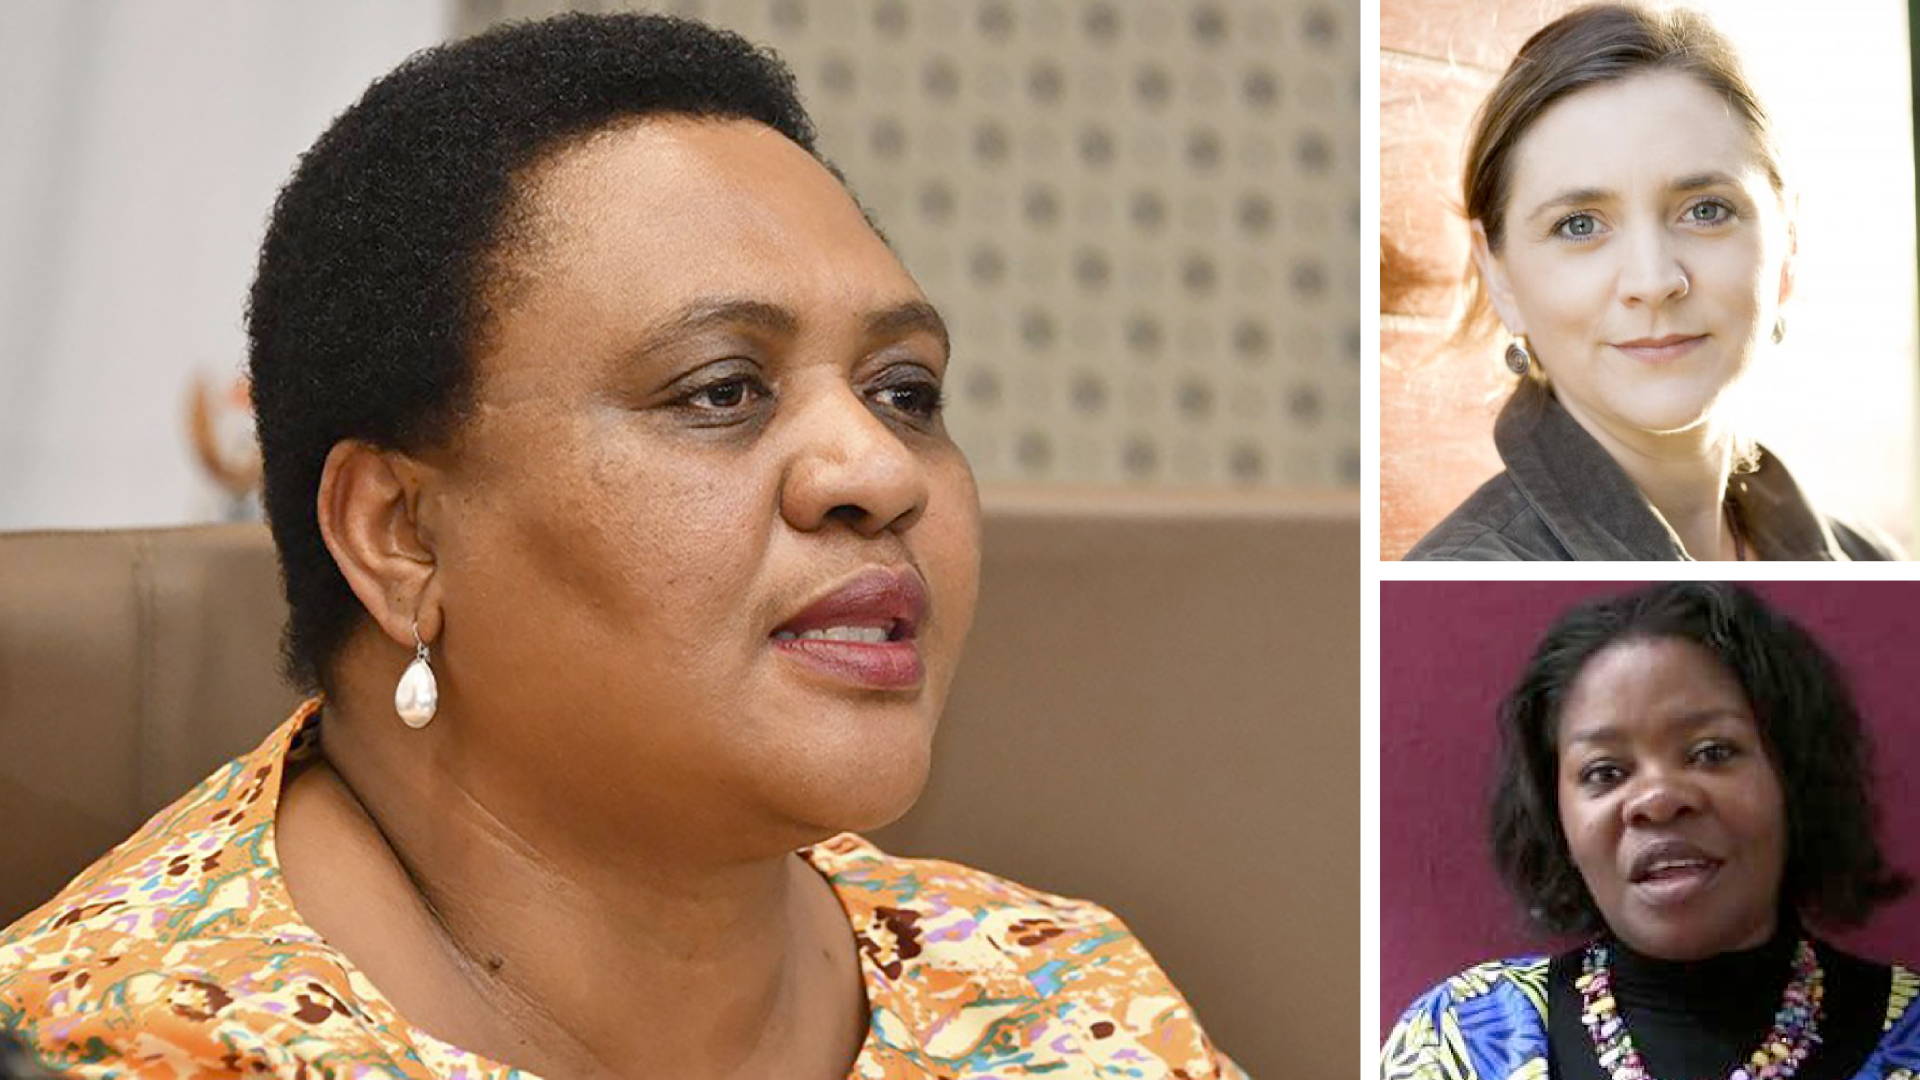 Pictured from left are Thoko Didiza, the minister of agriculture, land reform and rural development, (top right) Ruth Hall professor at PLAAS at the University of the Western Cape and (bottom right) Editrudith Lukanga, founder and executive director of the environmental management and economic development organization. Photo: Supplied.